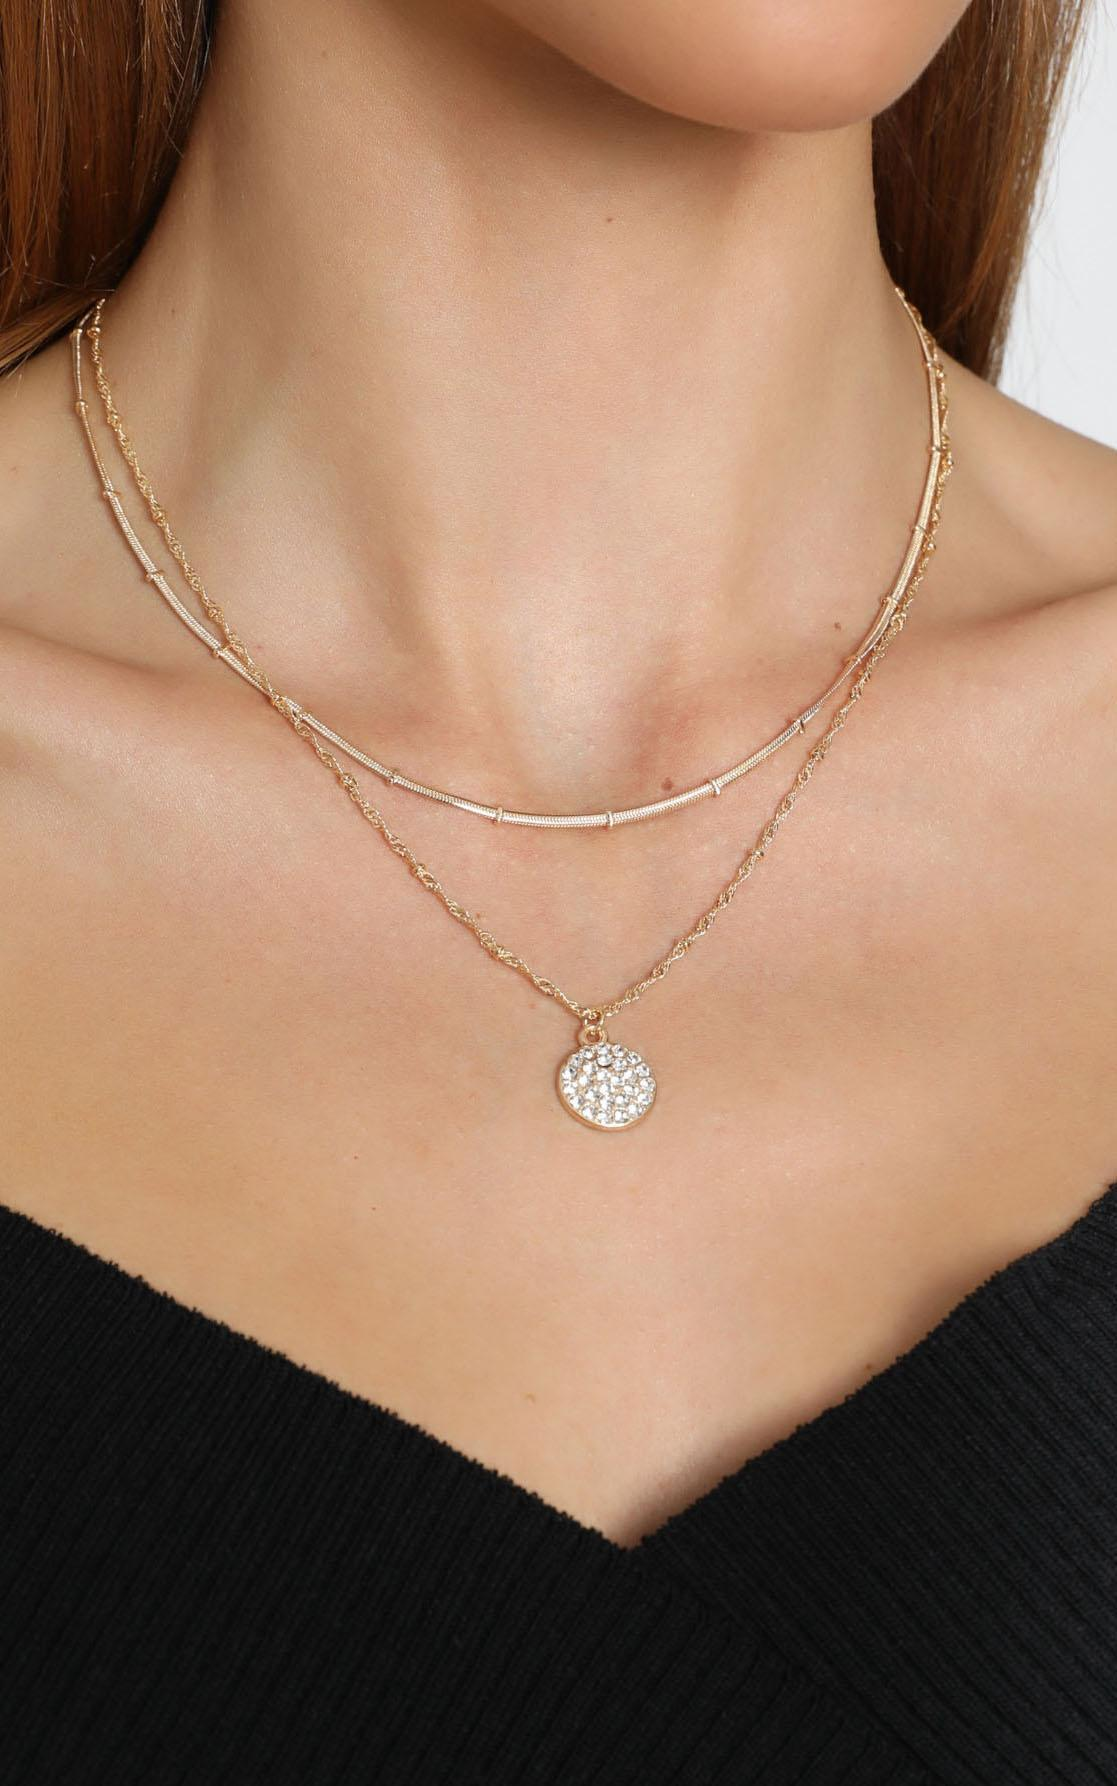 Kaitlyn Layered Necklace in Gold, , hi-res image number null